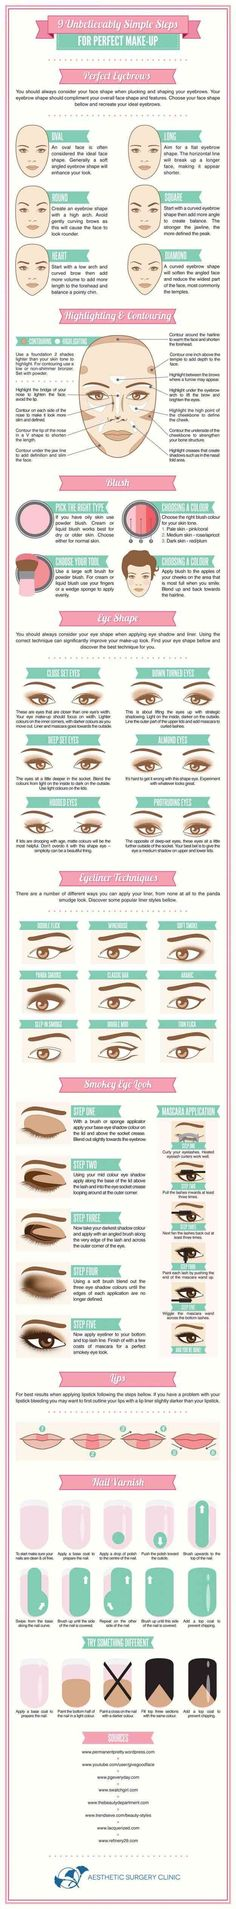 9 Simple Steps to Perfect Makeup   Best Makeup Tutorials And Beauty Tips From The Web   Makeup Tutorials